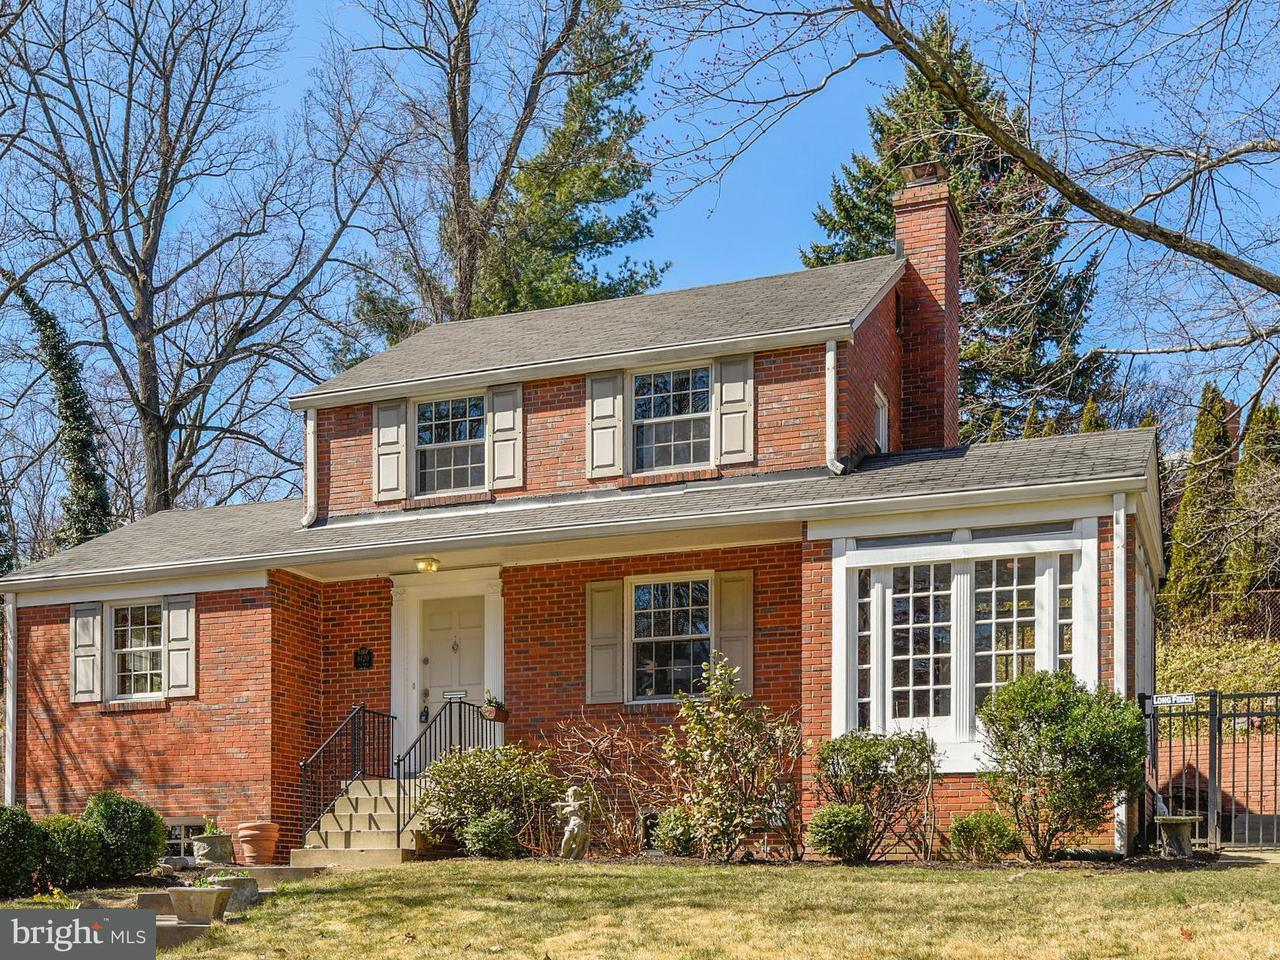 Single Family Home for Sale at 9420 Columbia Blvd 9420 Columbia Blvd Silver Spring, Maryland 20910 United States